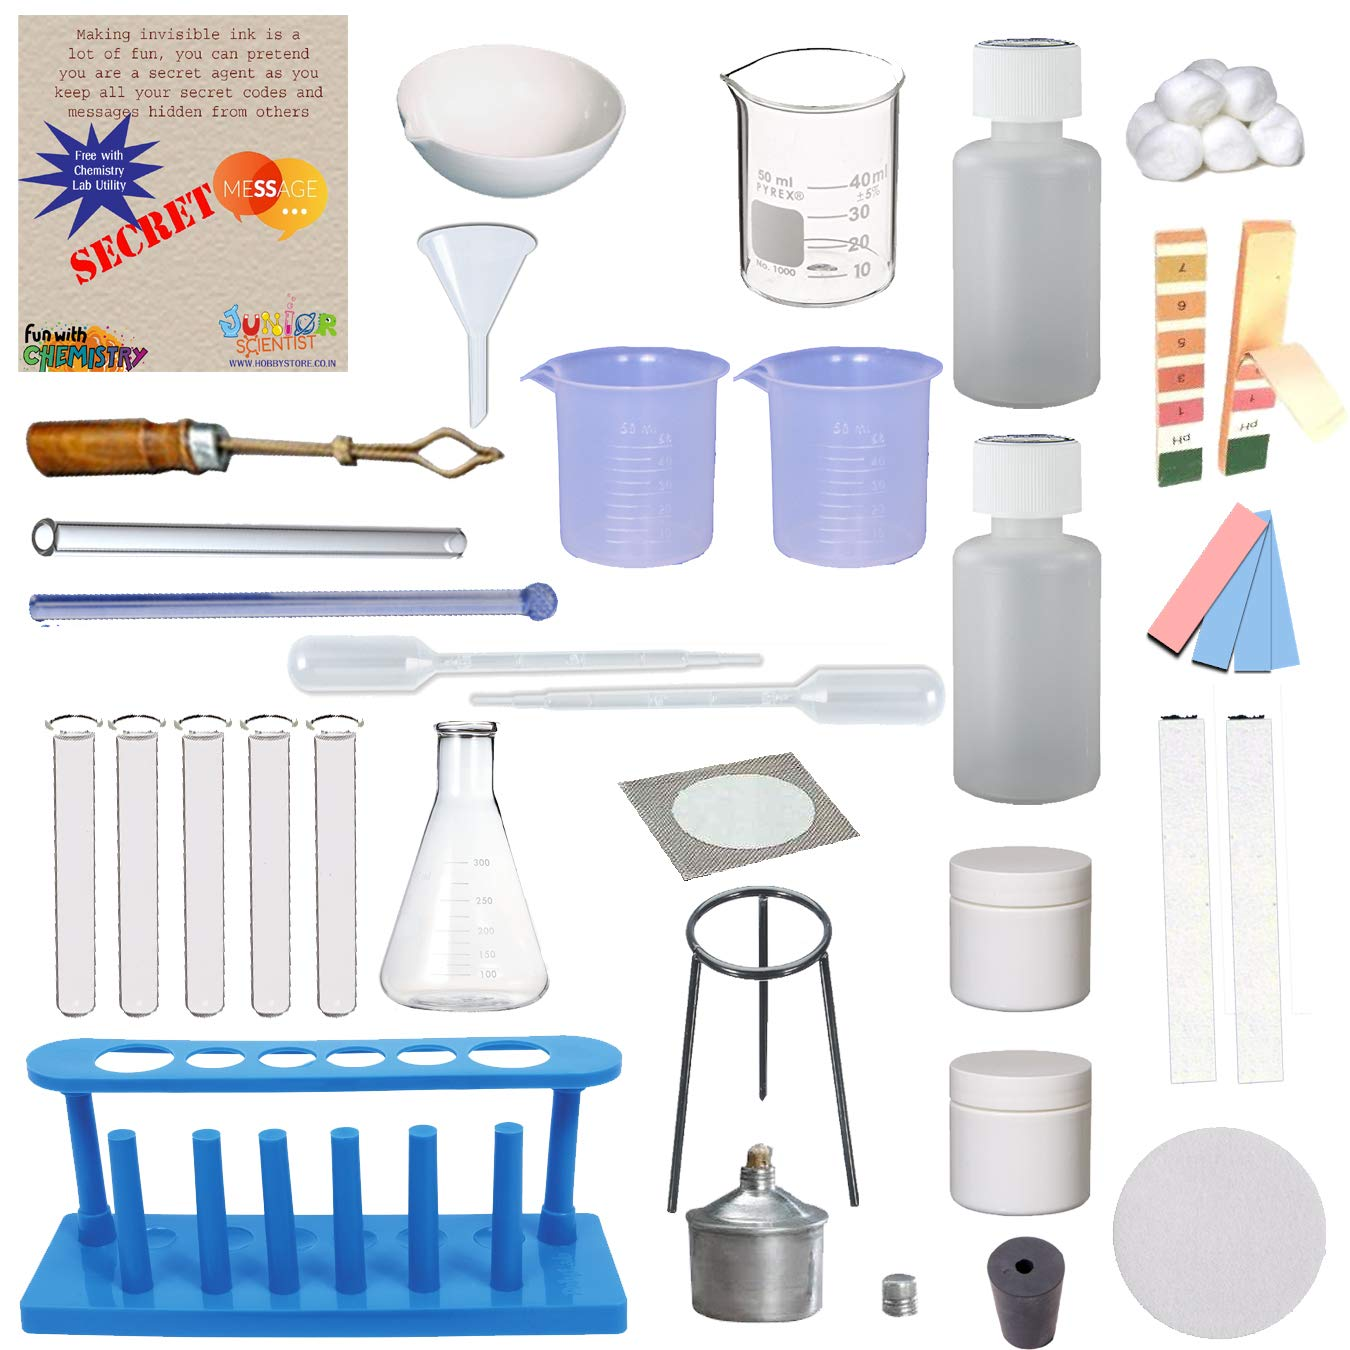 IDEA AND INNOVATION INCORPORATION Chemistry Lab Utility - II for Kids (Multicolour) product image